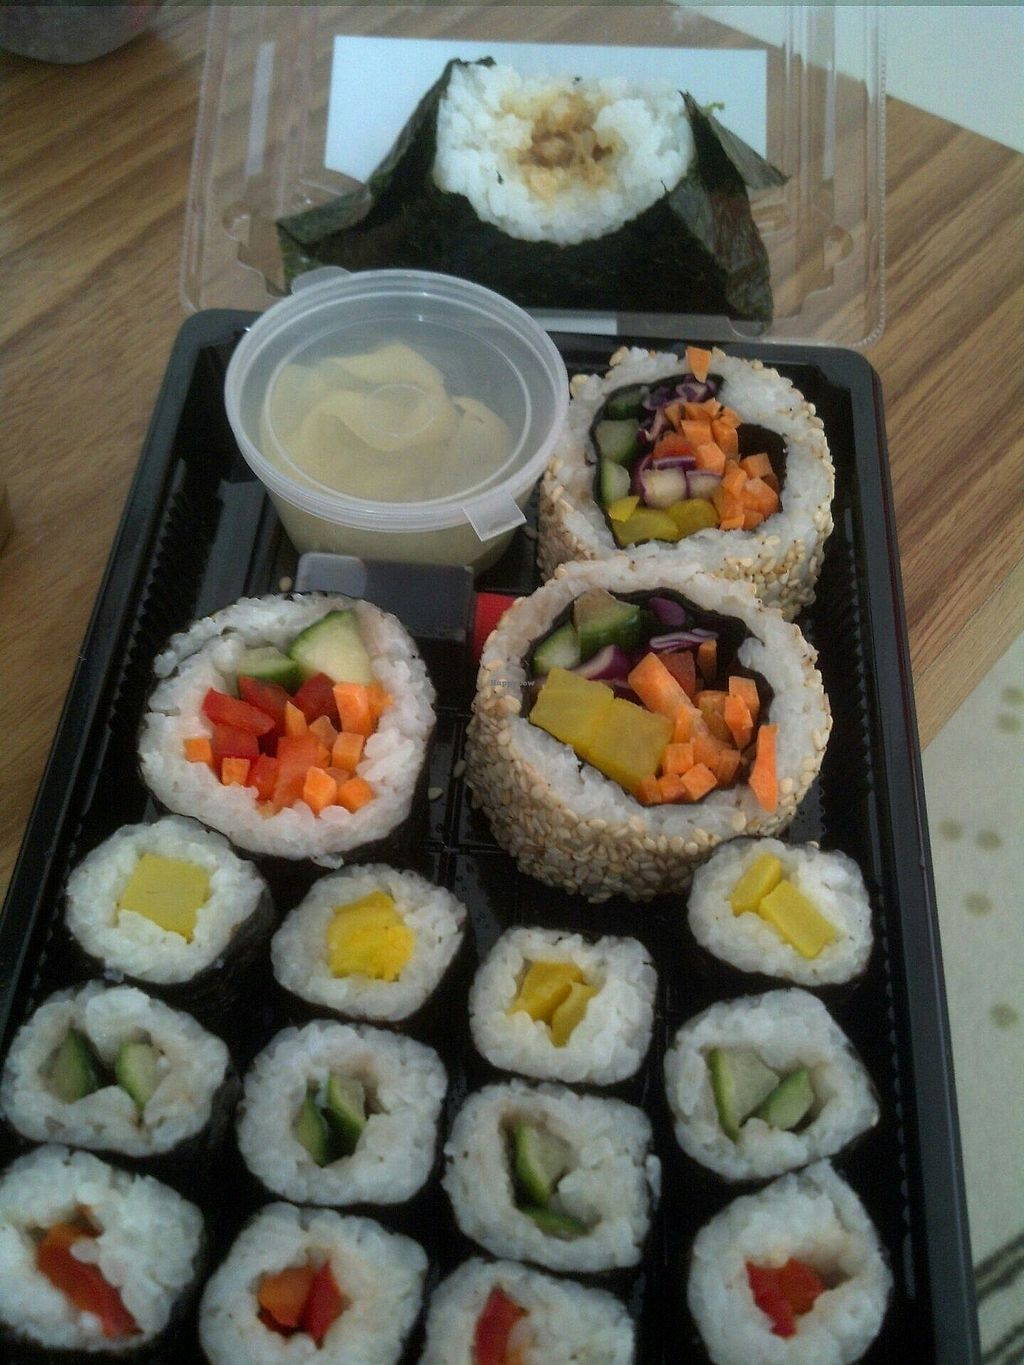 """Photo of Alnatura - Alte Jakobstr  by <a href=""""/members/profile/dicer"""">dicer</a> <br/>Vegan, organic sushi <br/> August 8, 2017  - <a href='/contact/abuse/image/71743/290408'>Report</a>"""